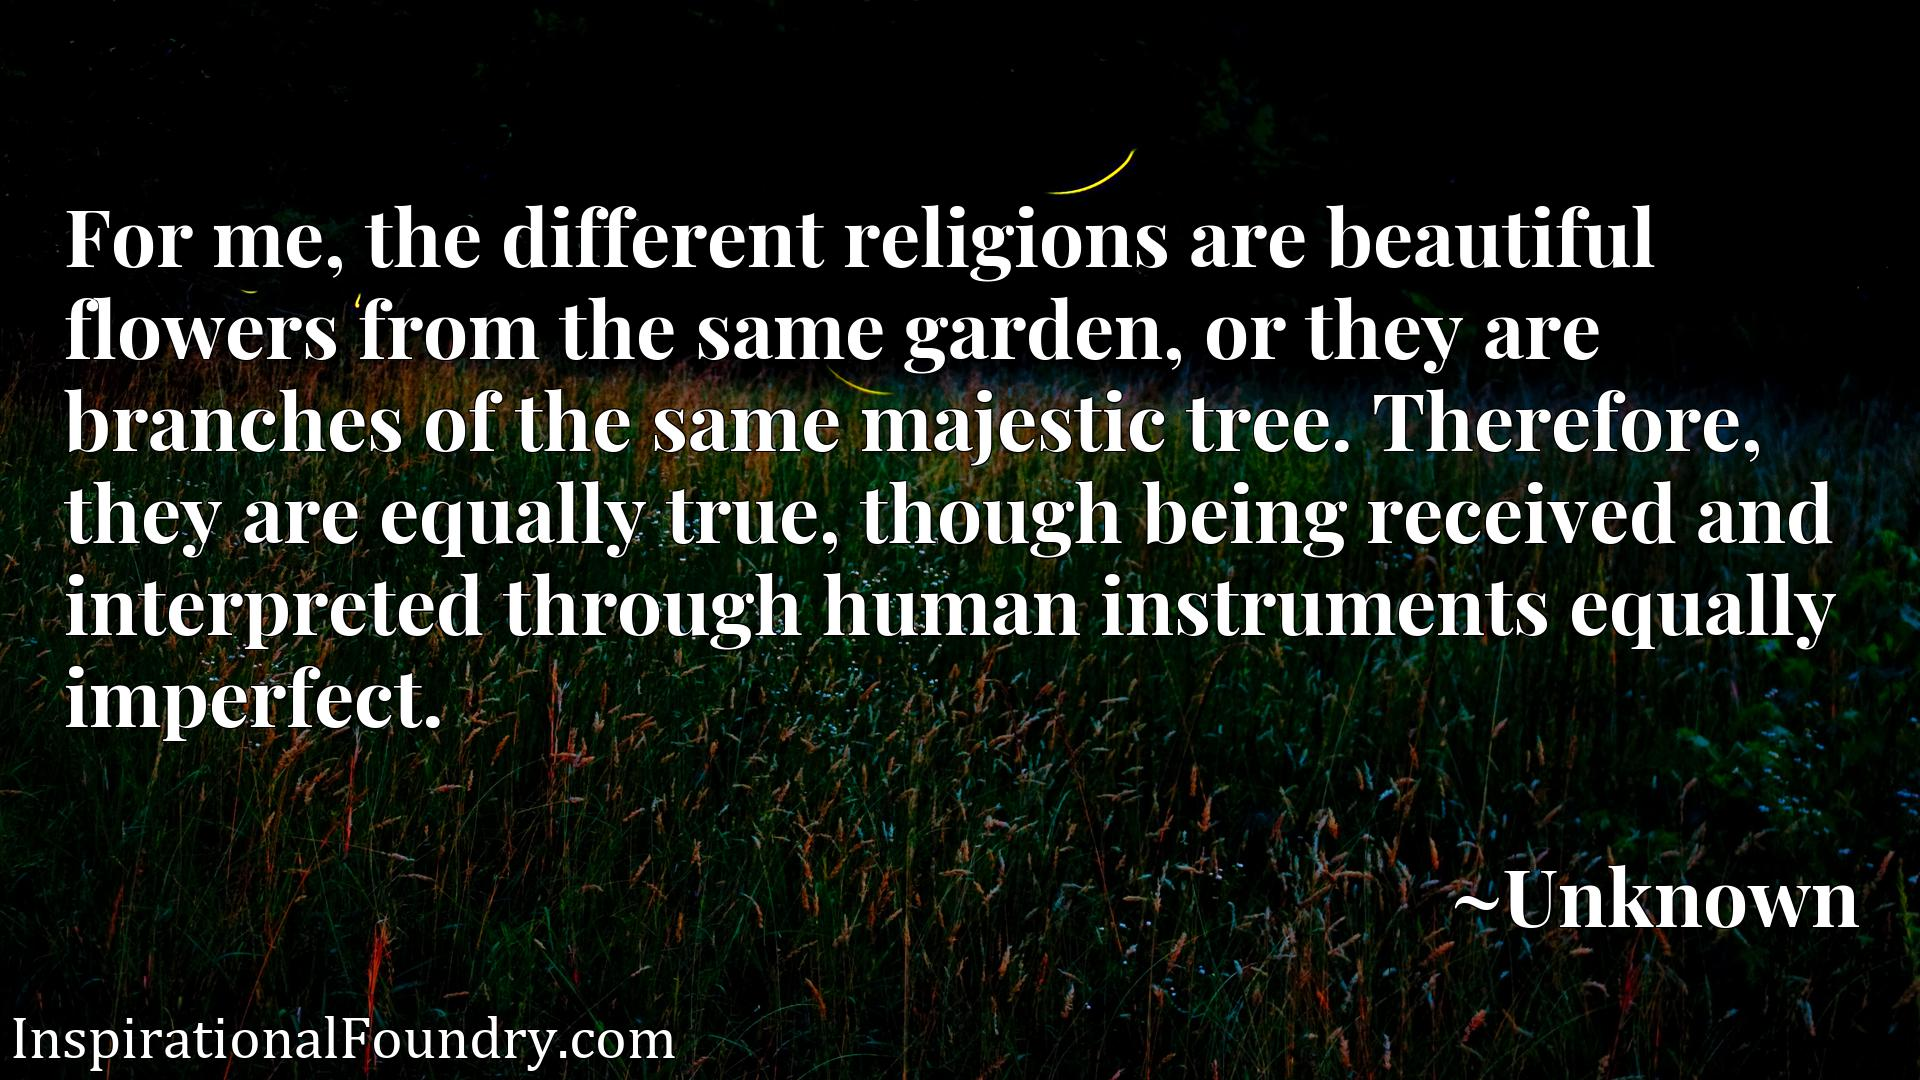 For me, the different religions are beautiful flowers from the same garden, or they are branches of the same majestic tree. Therefore, they are equally true, though being received and interpreted through human instruments equally imperfect.